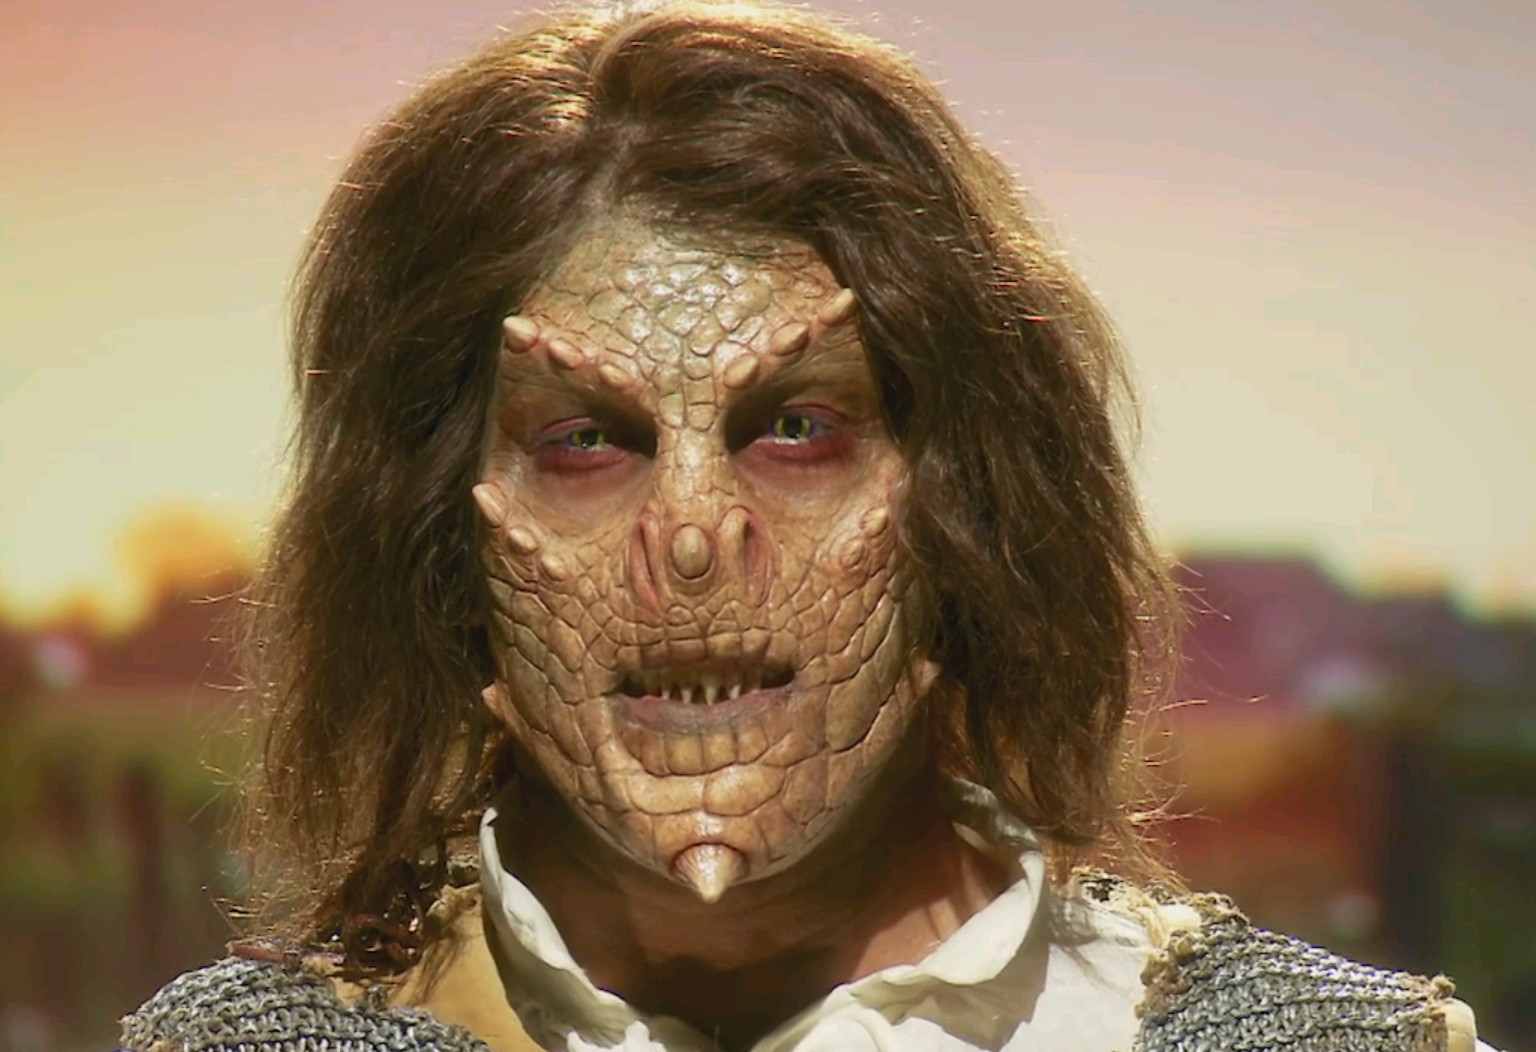 A close look at Stevie Calabrese's finished makeup